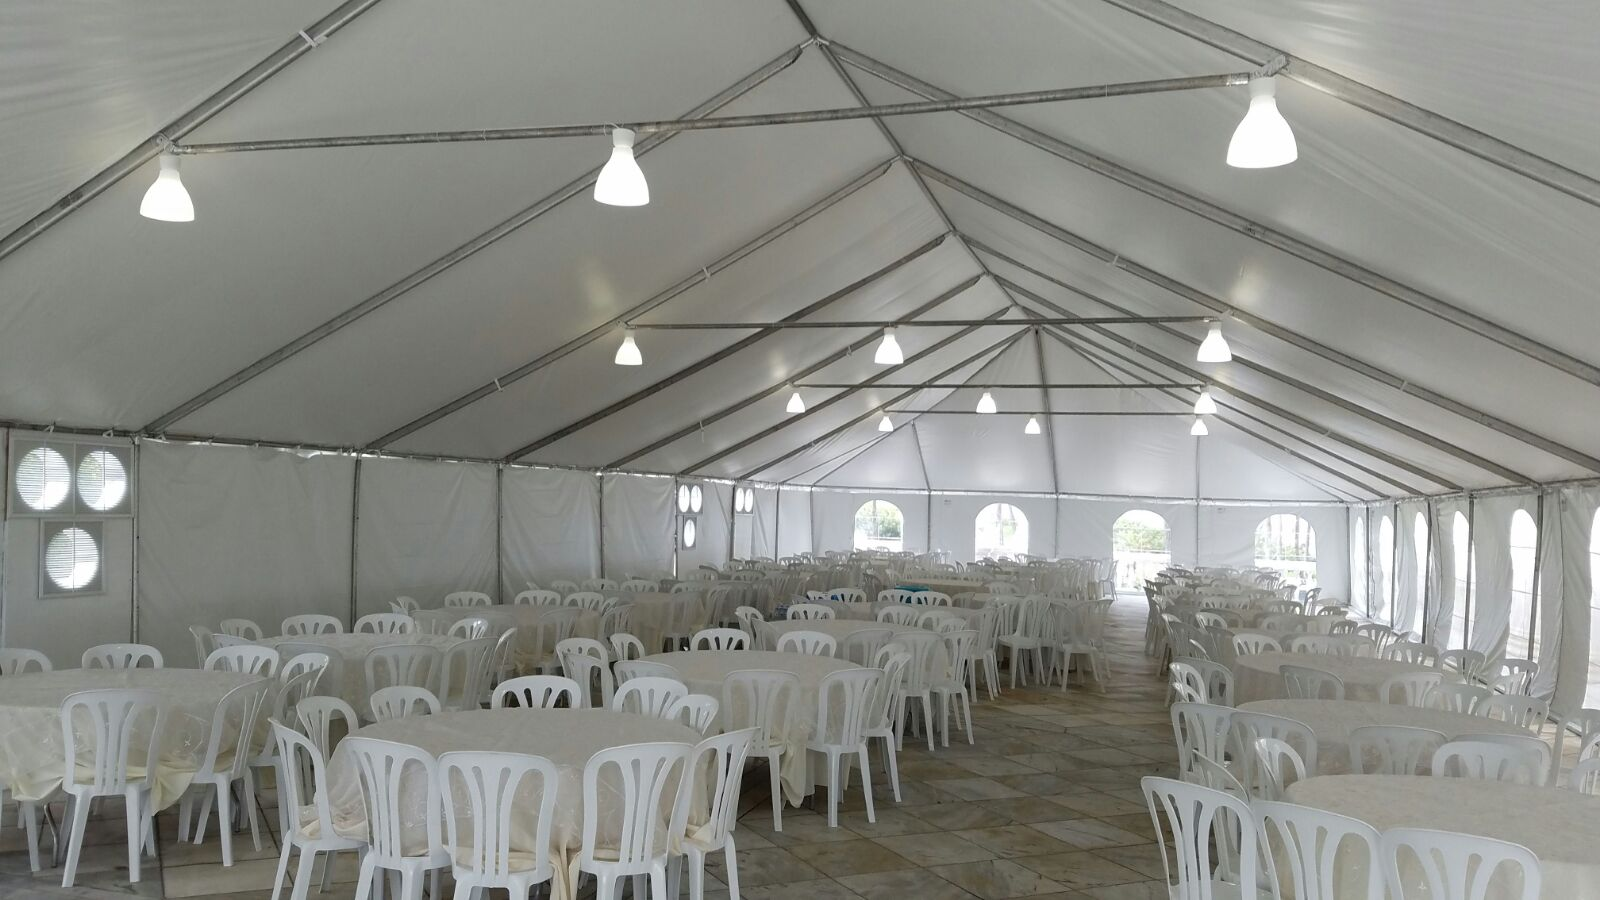 CARPA 40 X 100 CON AIRE ACONDICIONADO - Copy